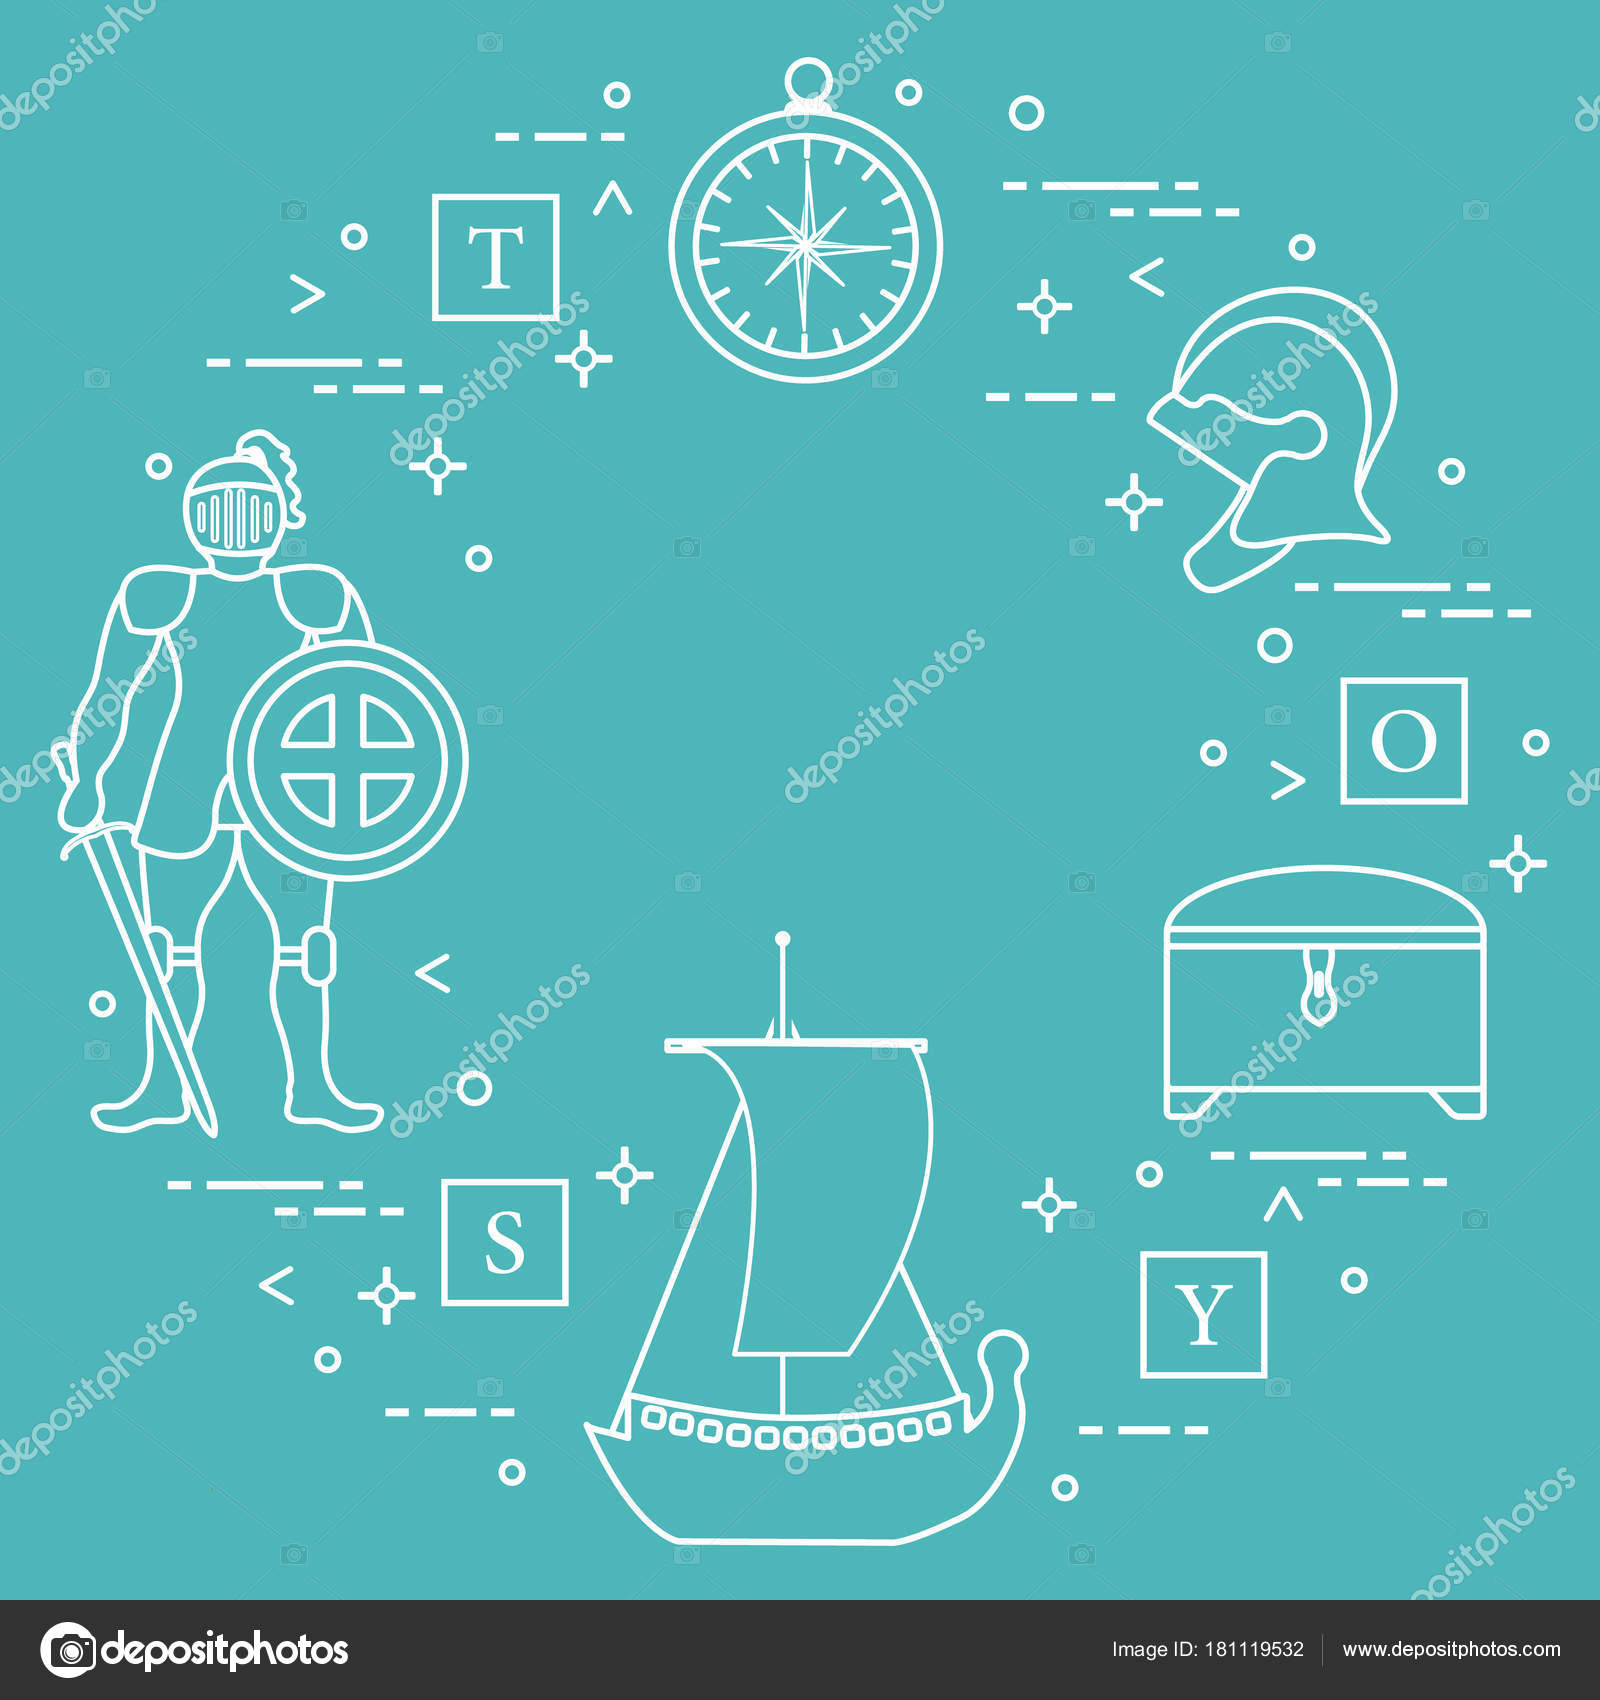 Knight, shield, sword, helmets, ship and other. — Stock Vector ...